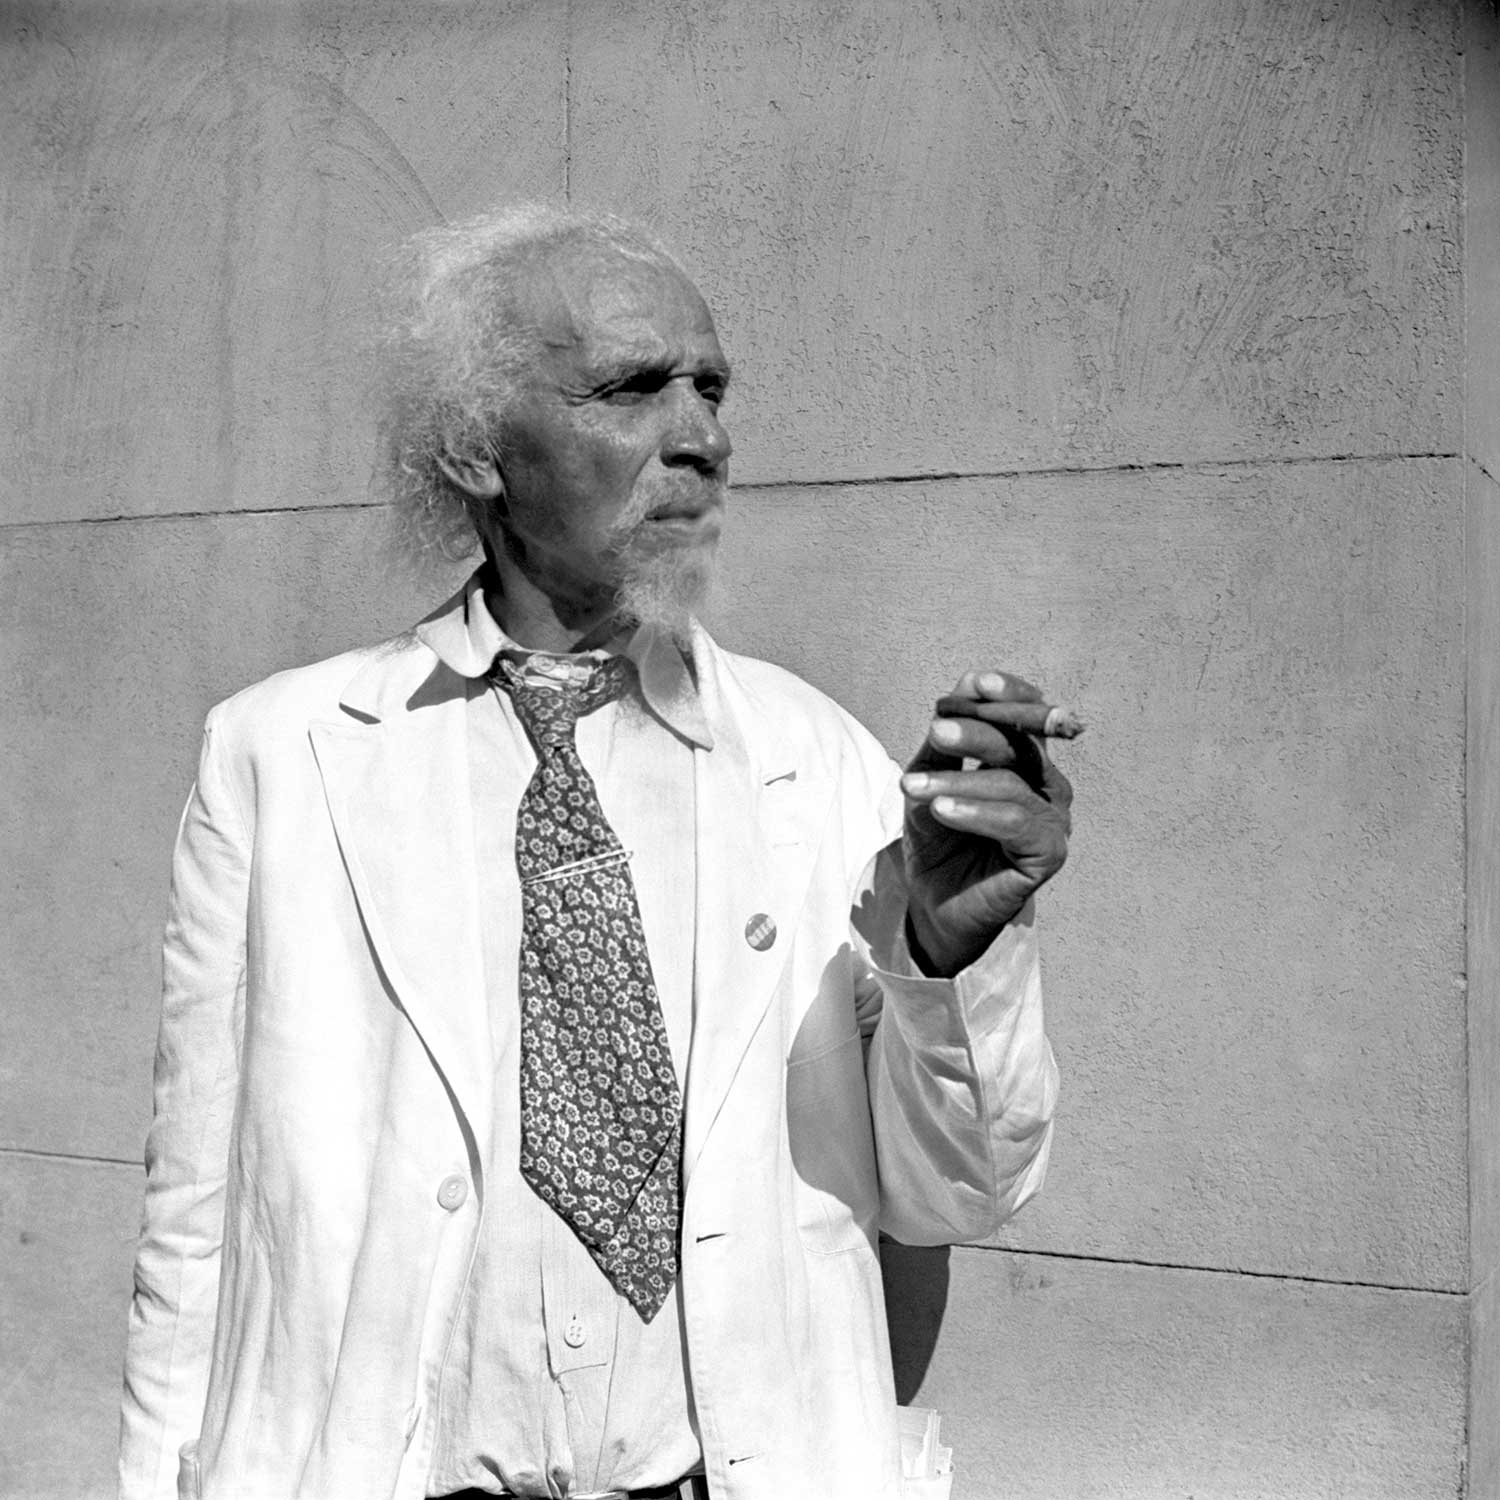 Black and white photo of man holding a cigar